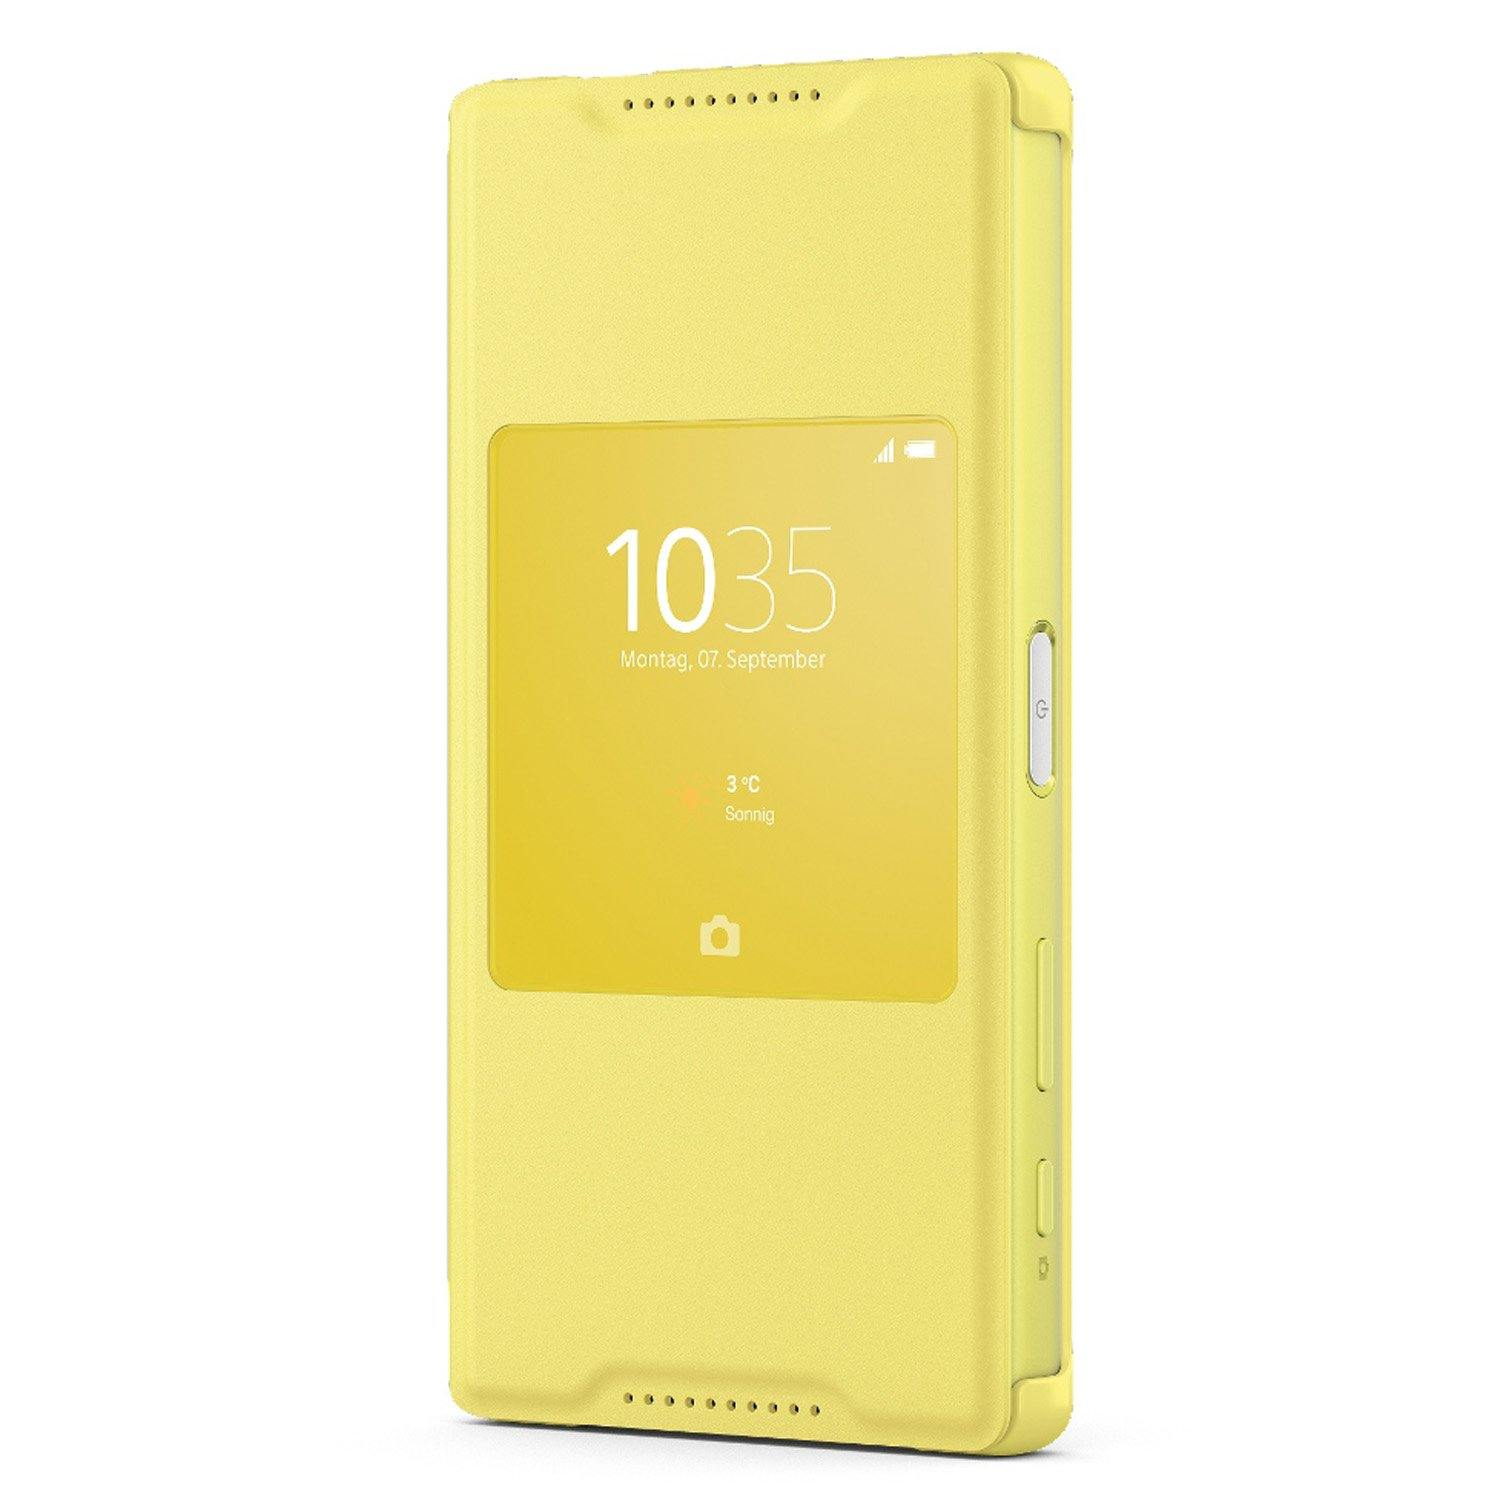 Sony Xperia Z5 Compact Style-Up Smart Window Cover Case Yellow - SCR44 - Uk Mobile Store